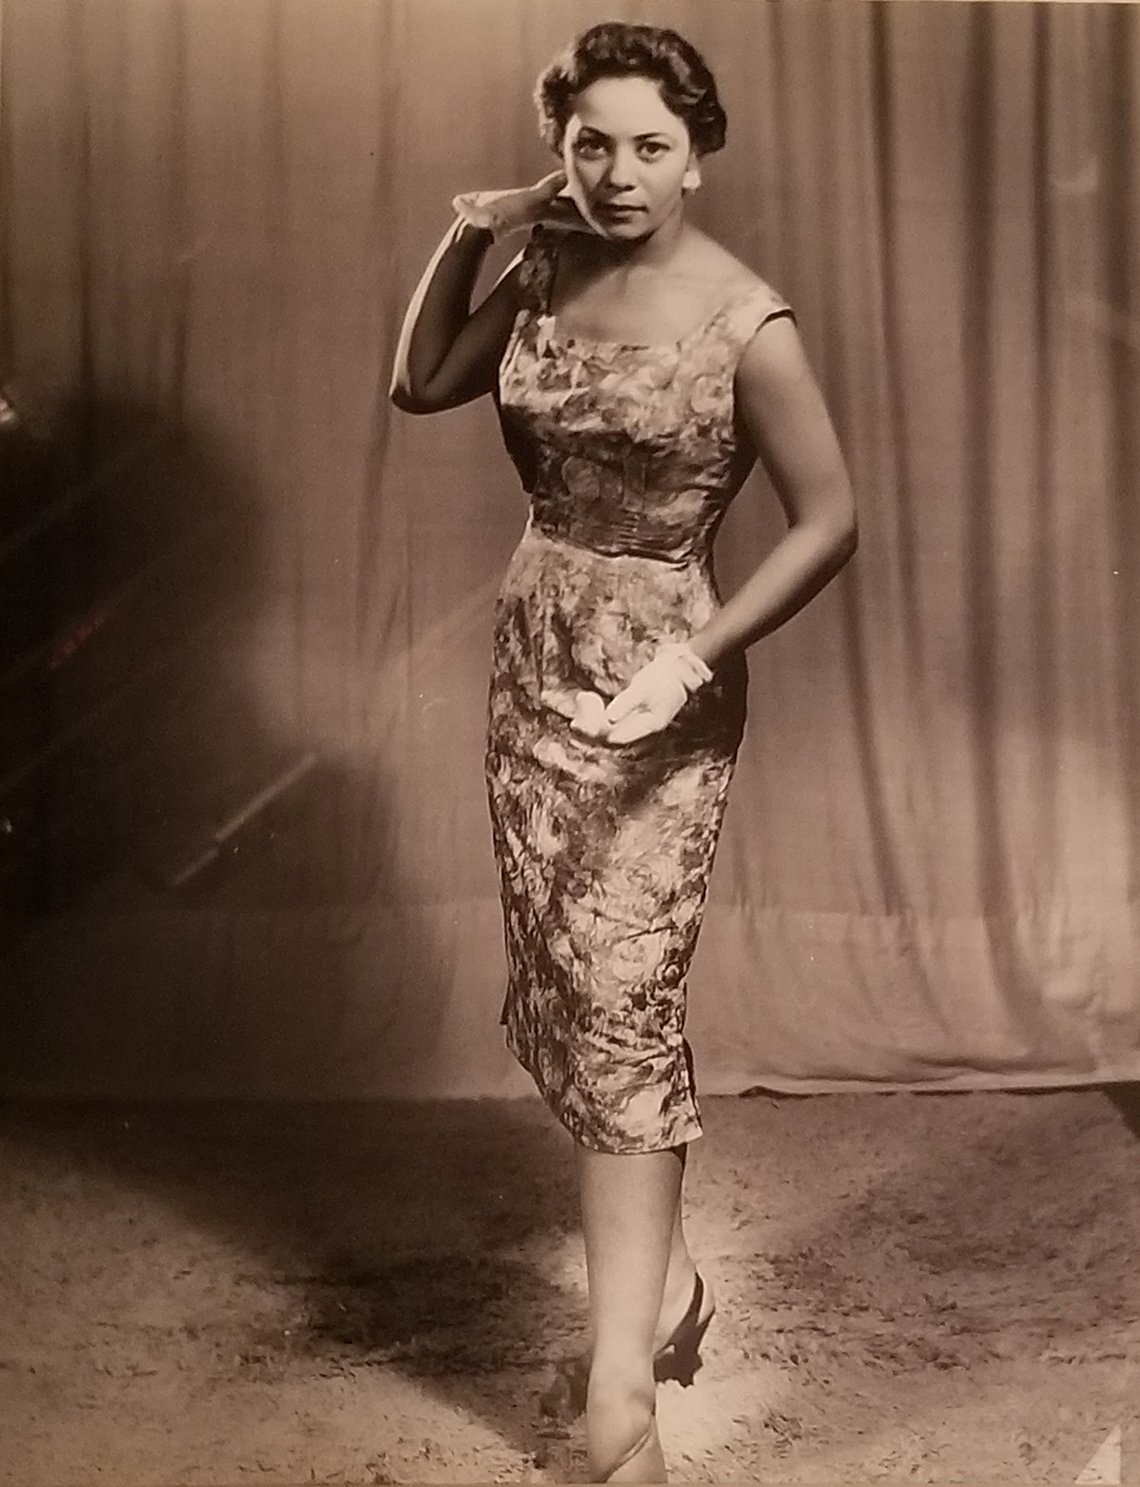 Nina brown modeling in her 20s